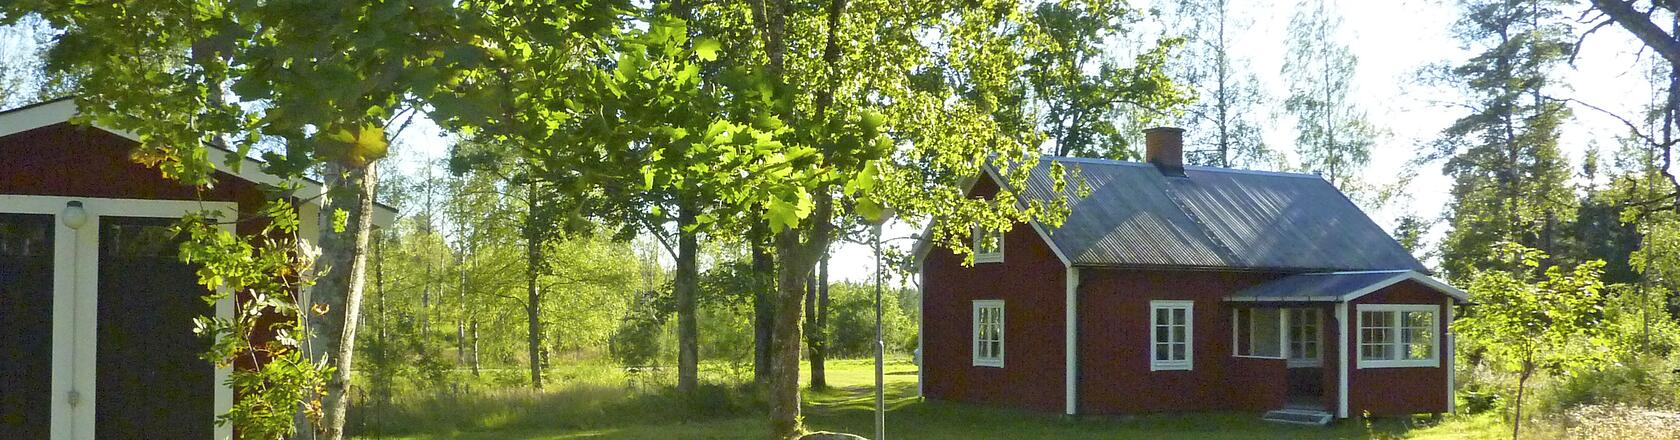 Vislanda in Sweden - Rent a holiday home  with DanCenter